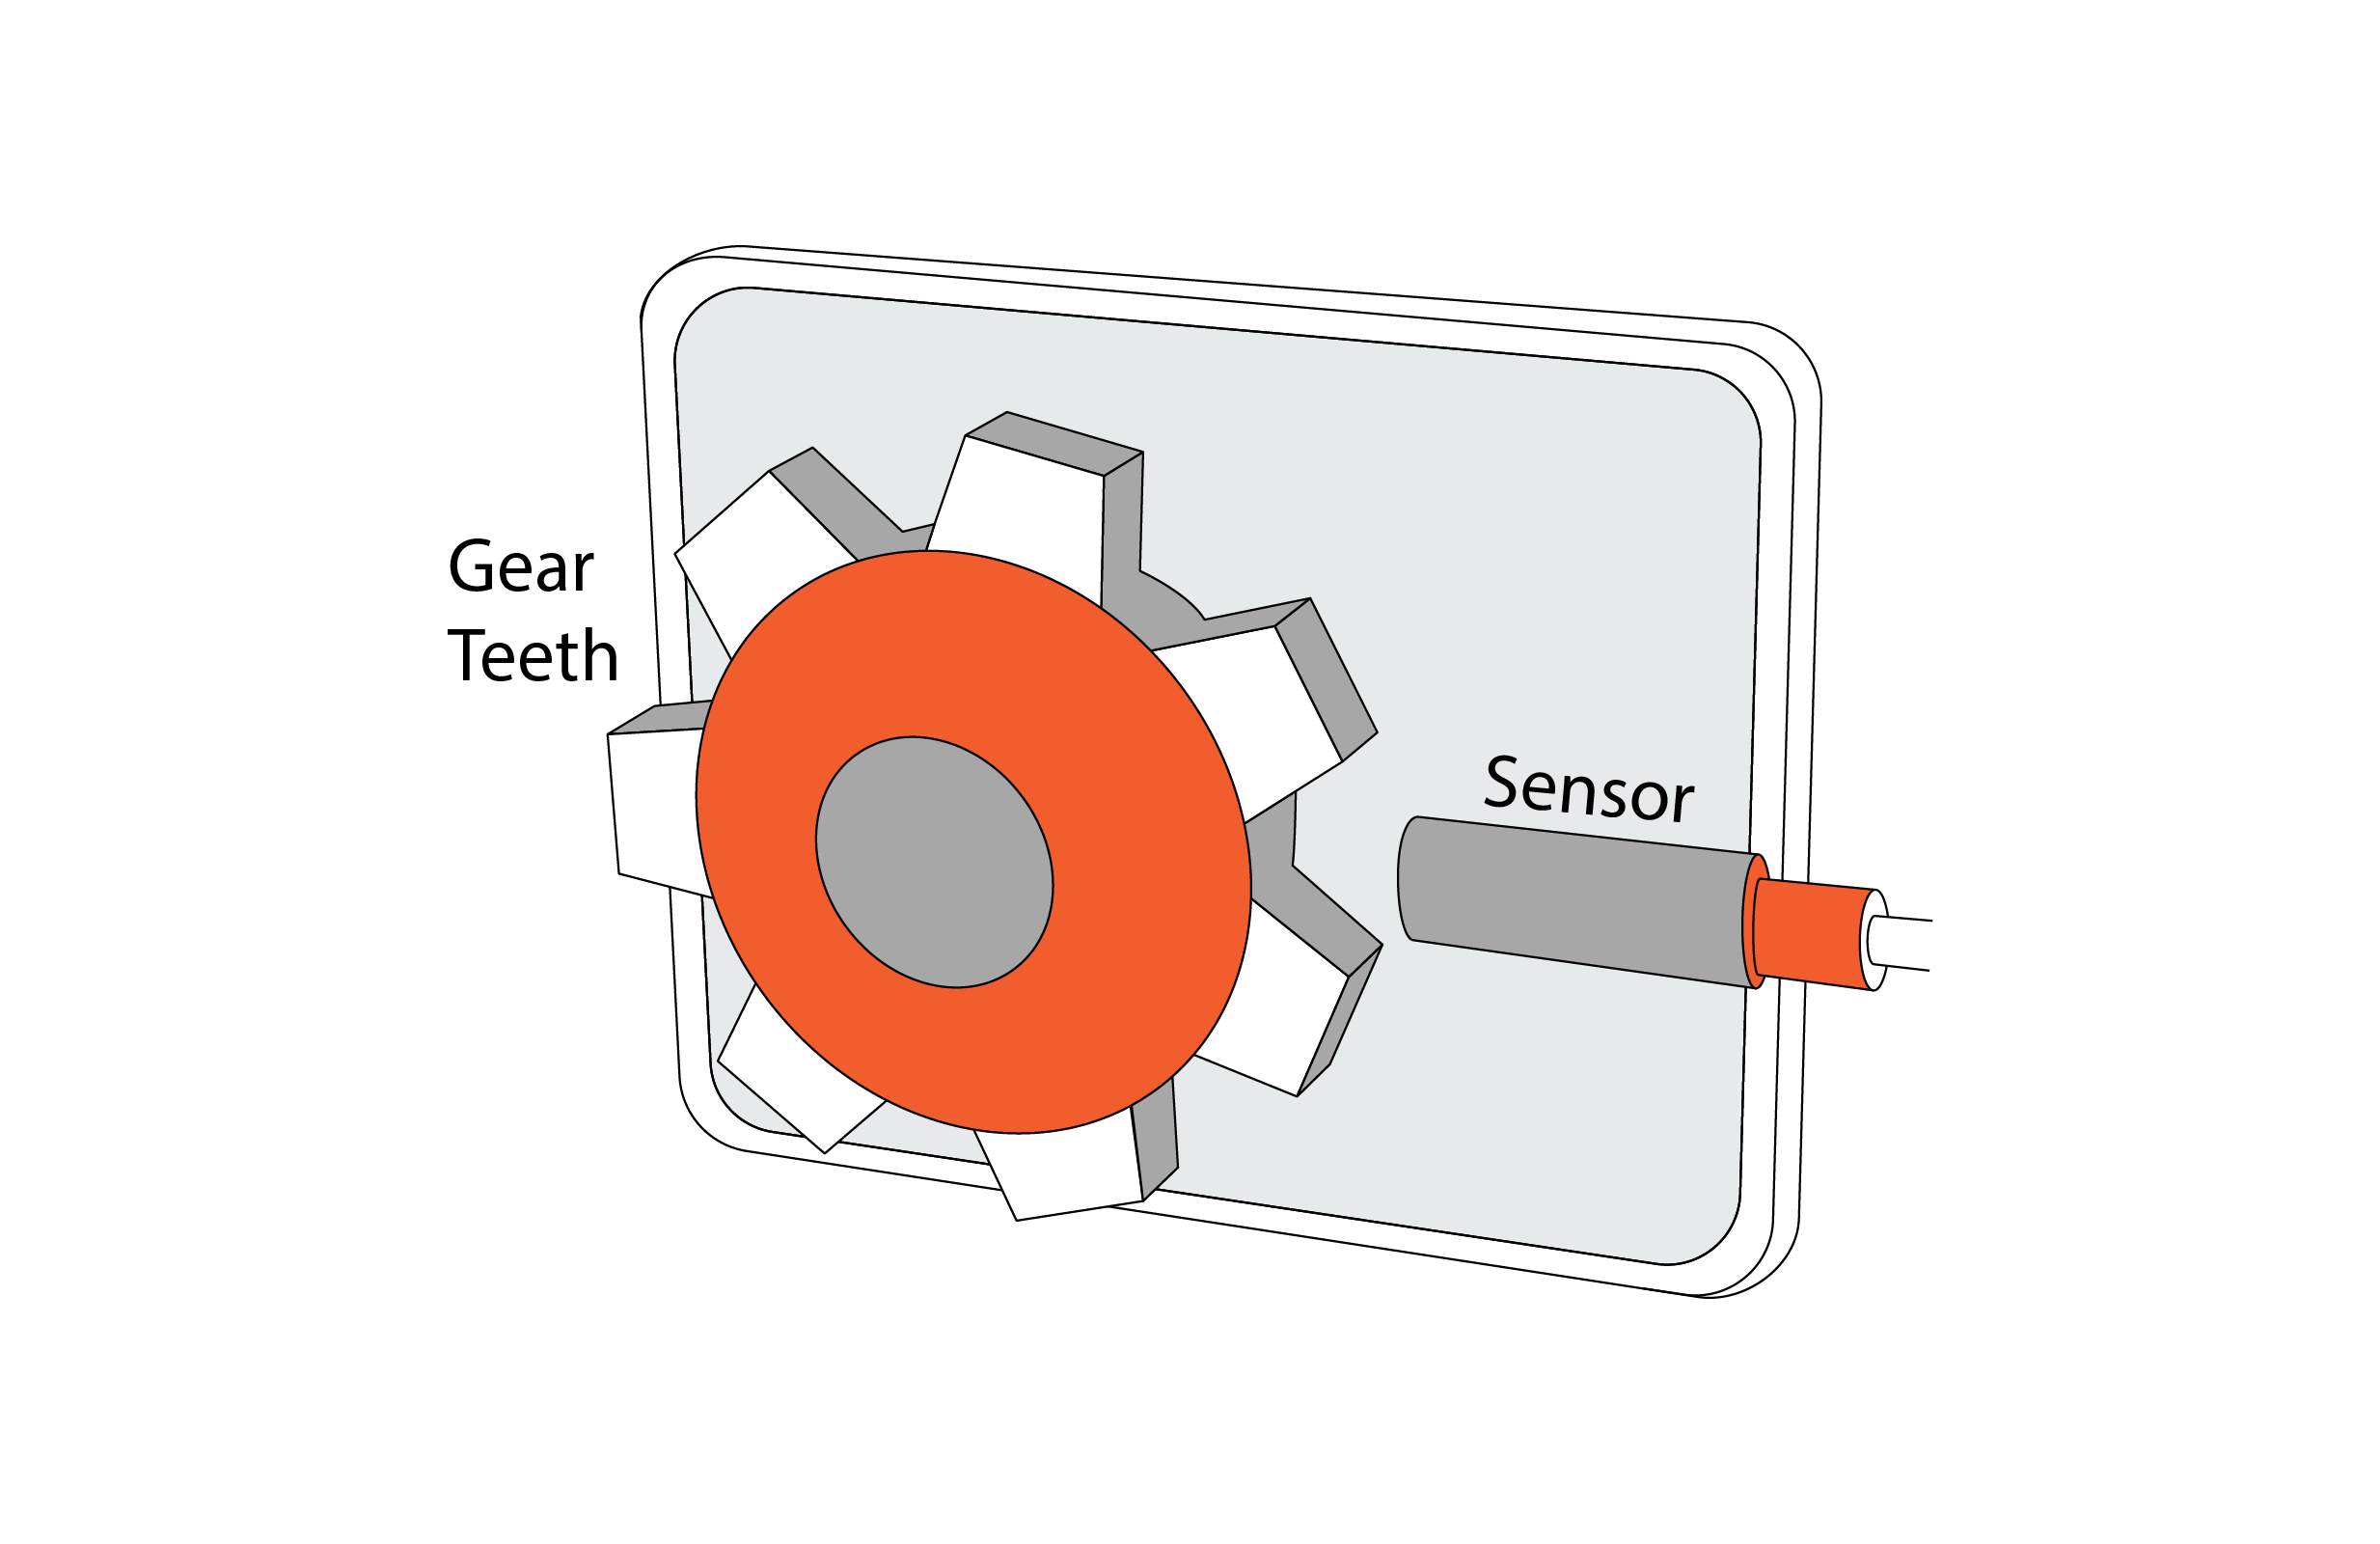 Gear tooth with proximity sensor